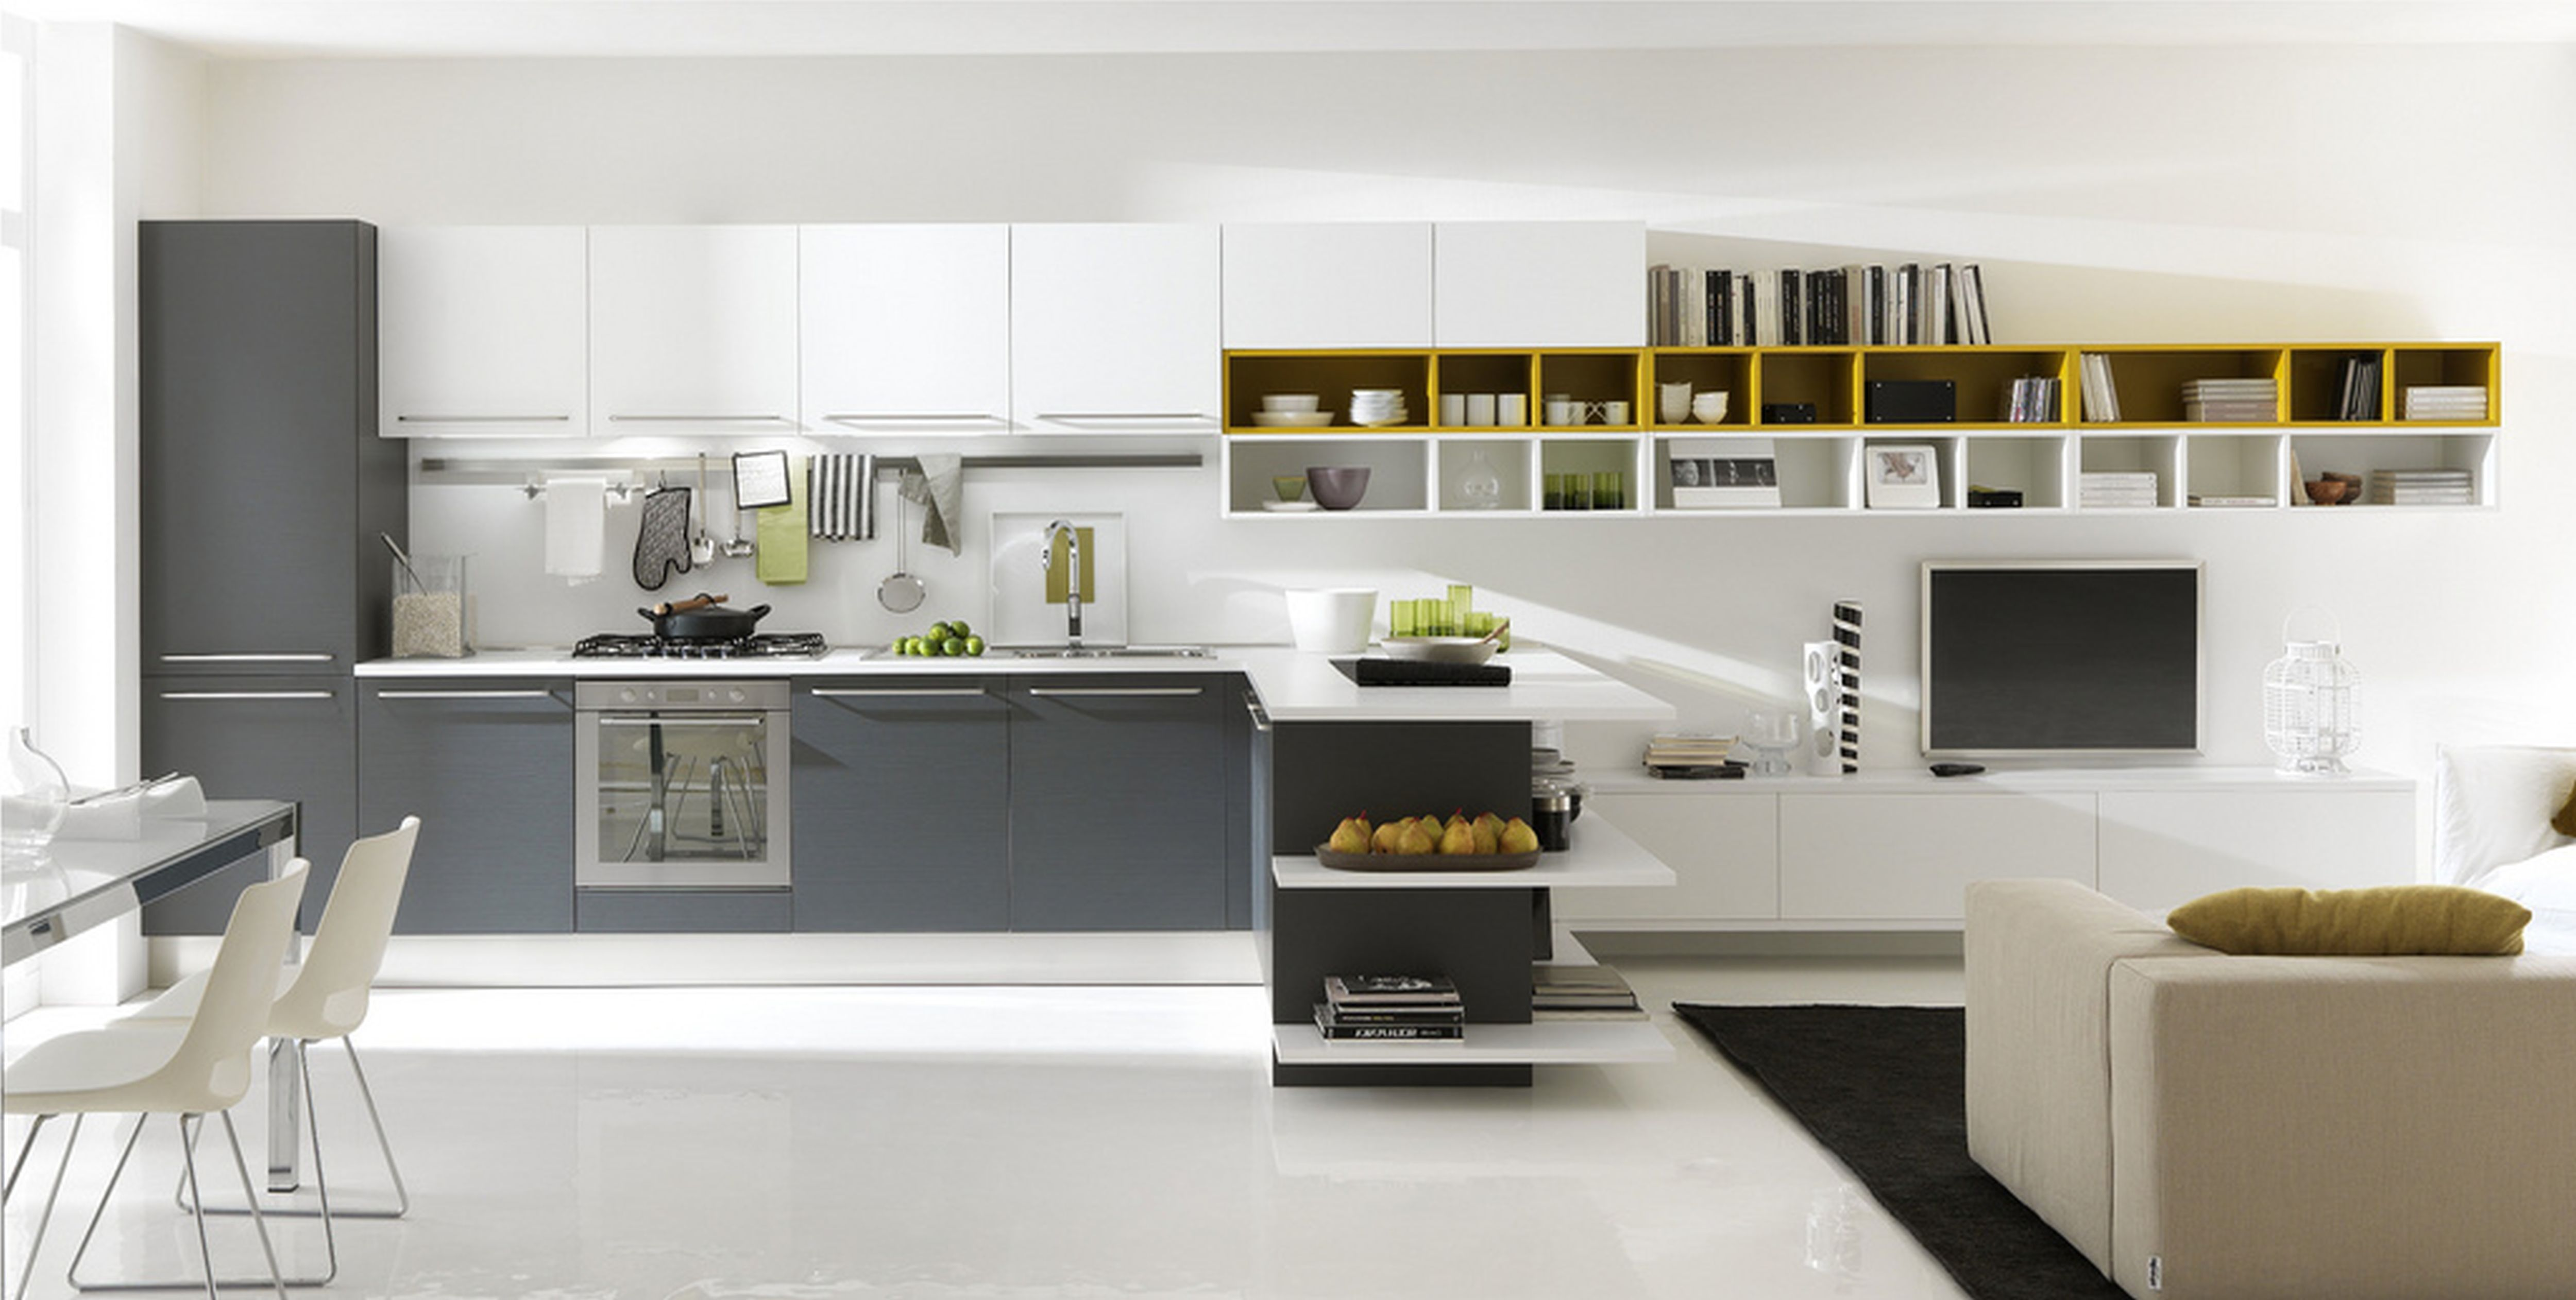 Image result for l shaped small apartment kitchen ideas on a budget ...